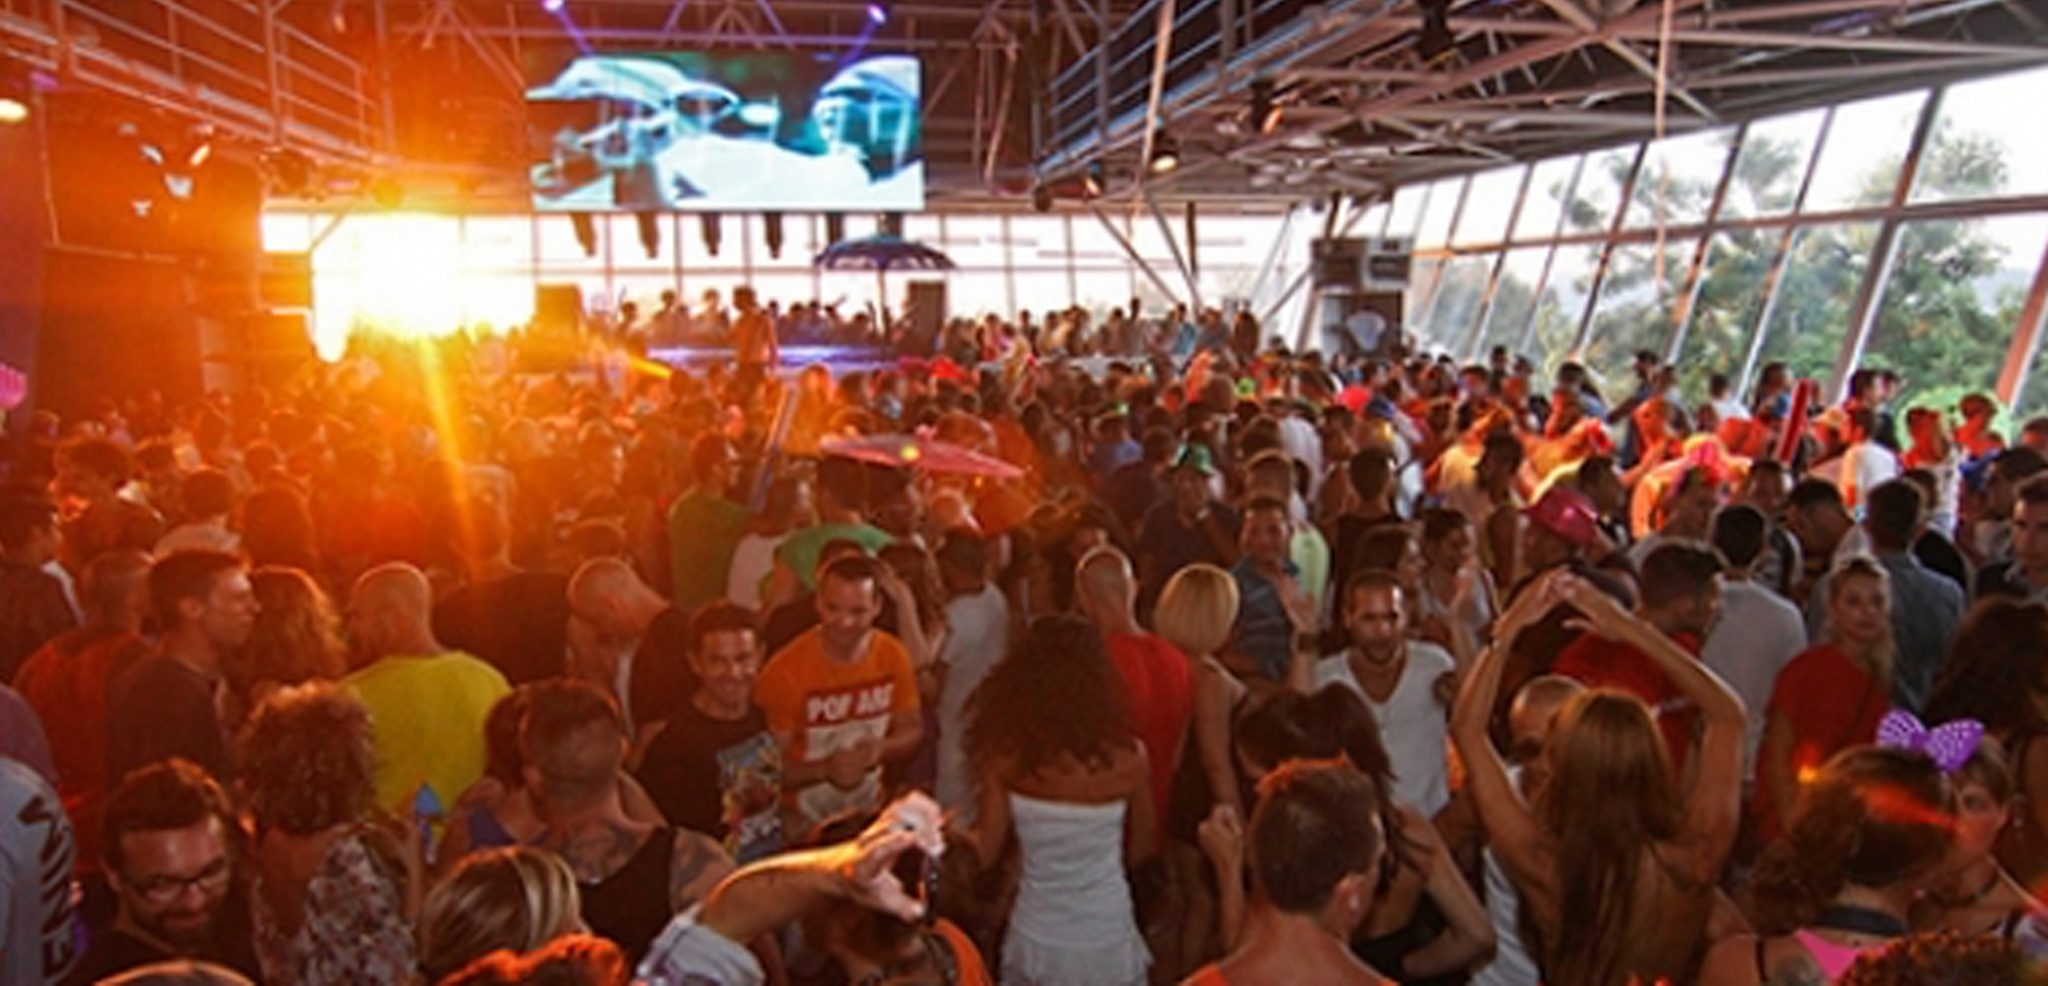 Hard Times Launches Saturday Party at Vista Club, Ibiza & Announces Opening Fiesta